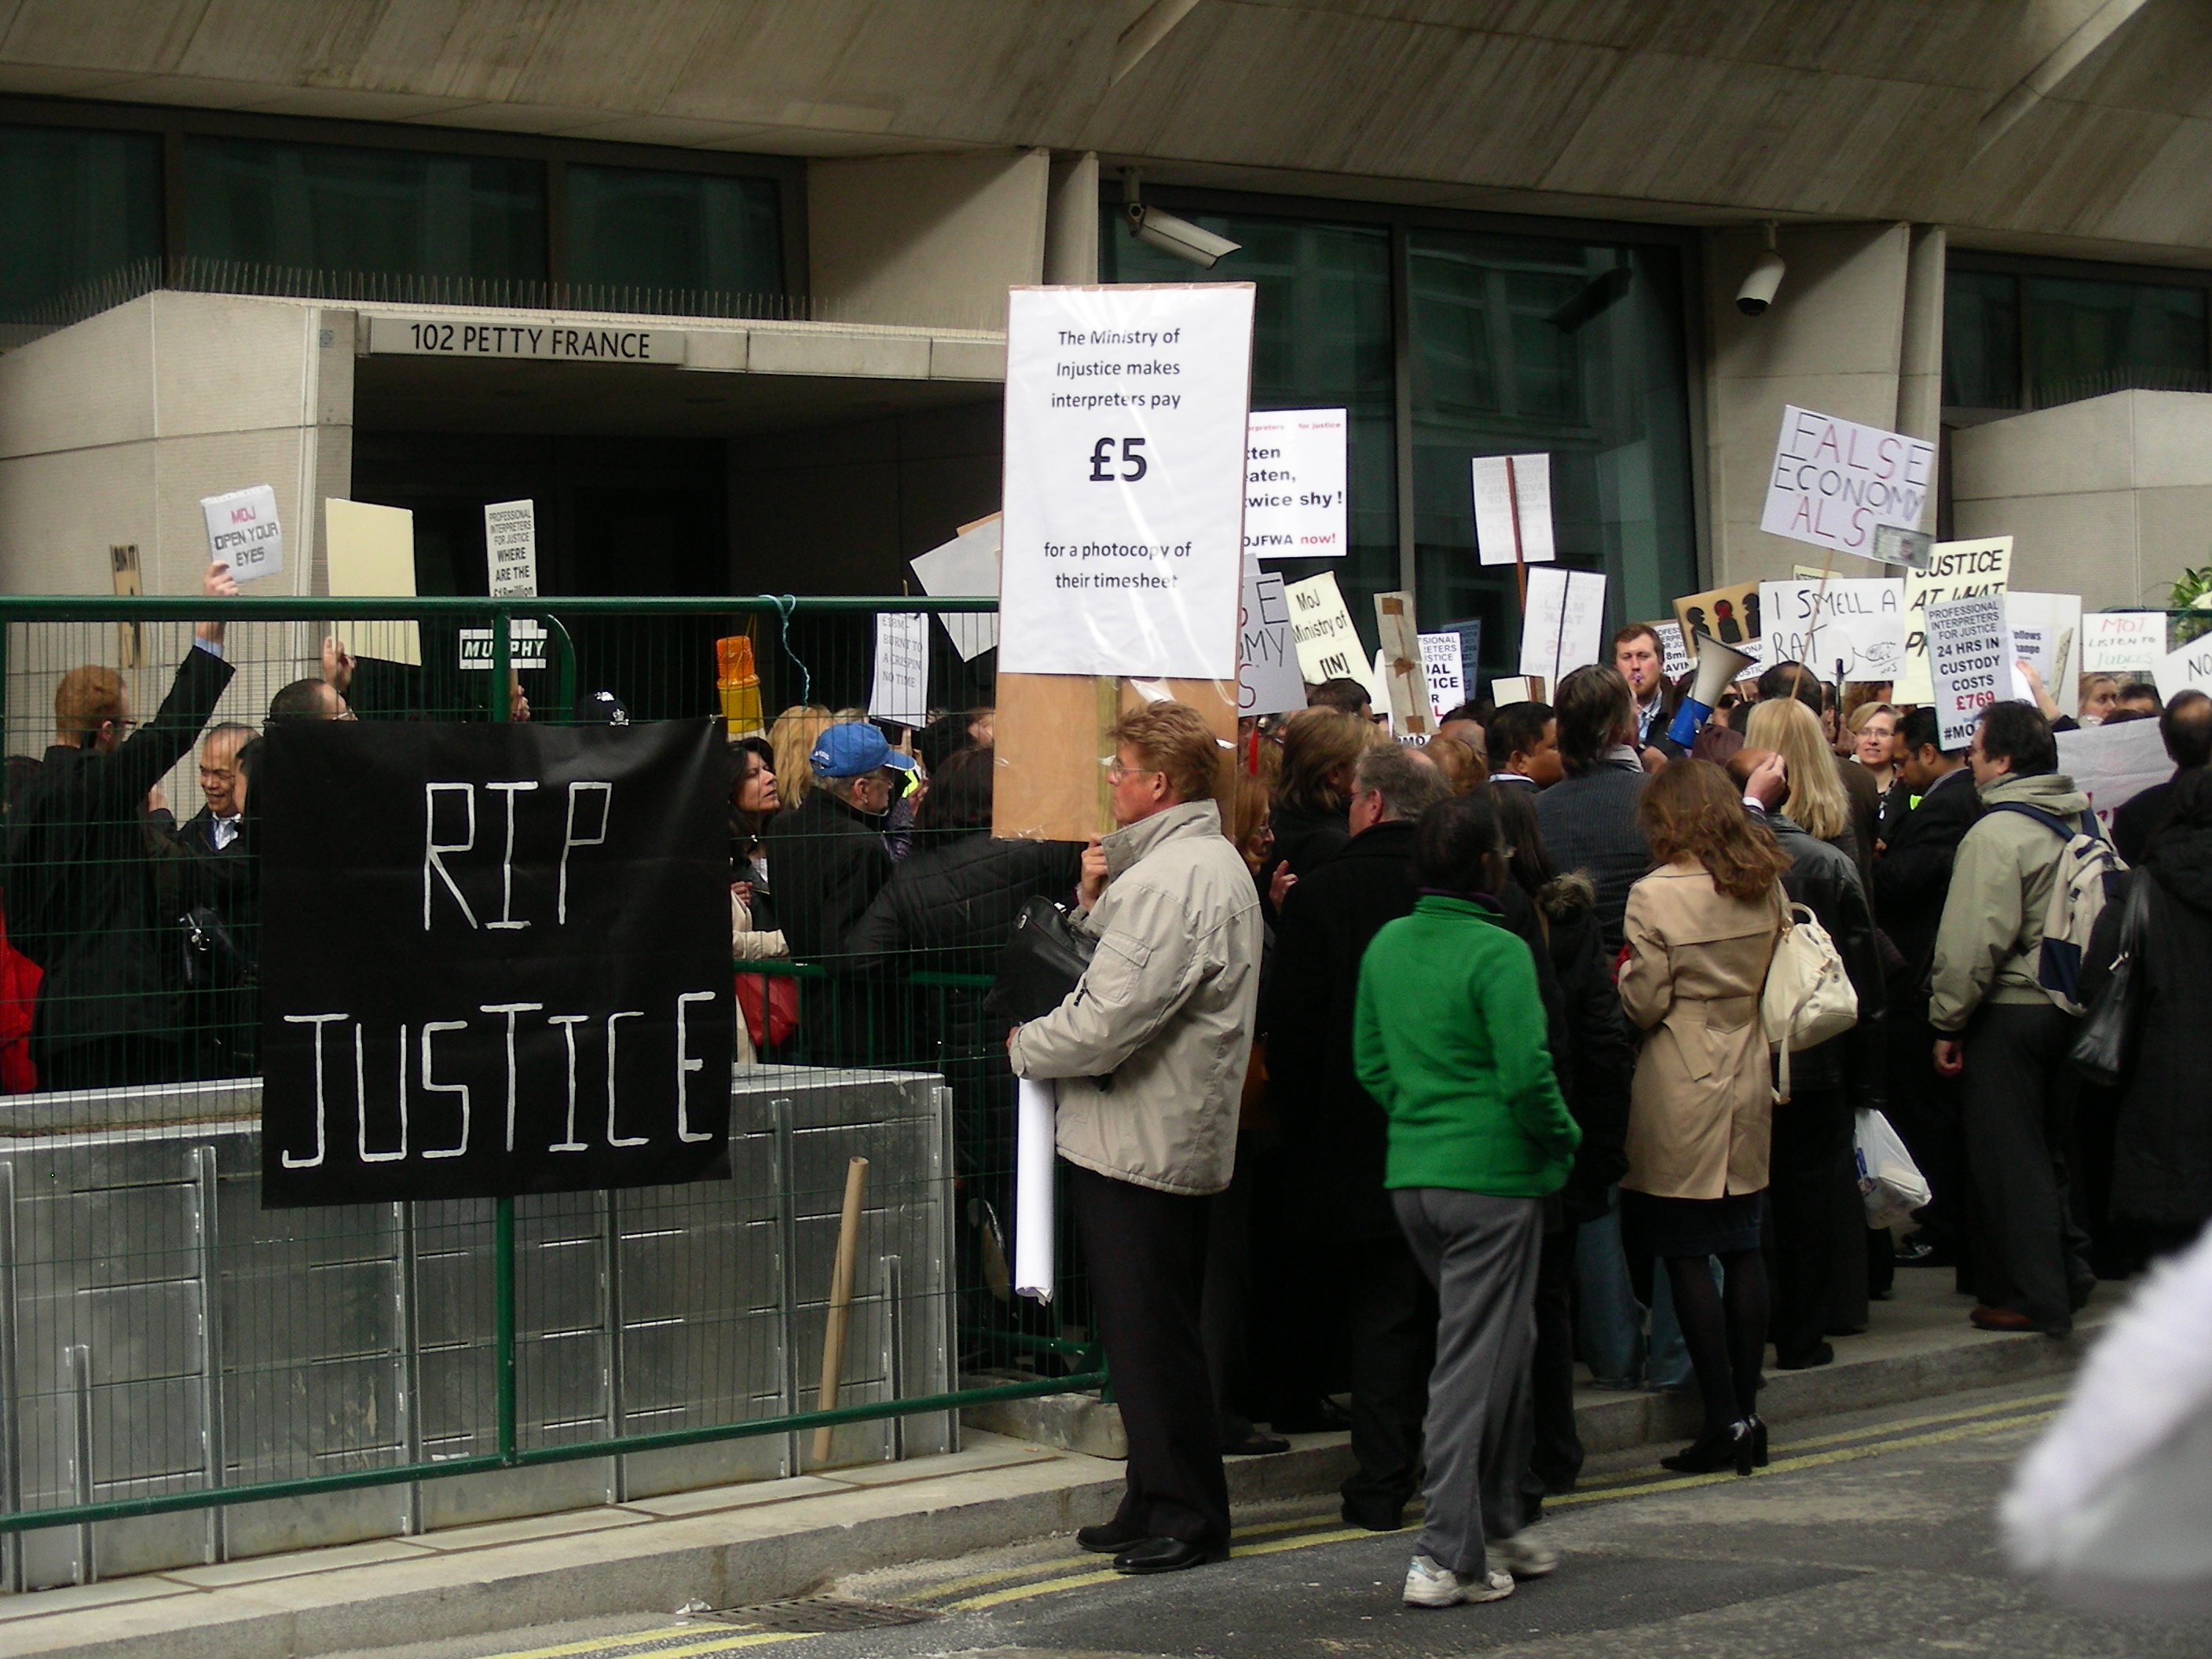 protest outside Ministry of Justice